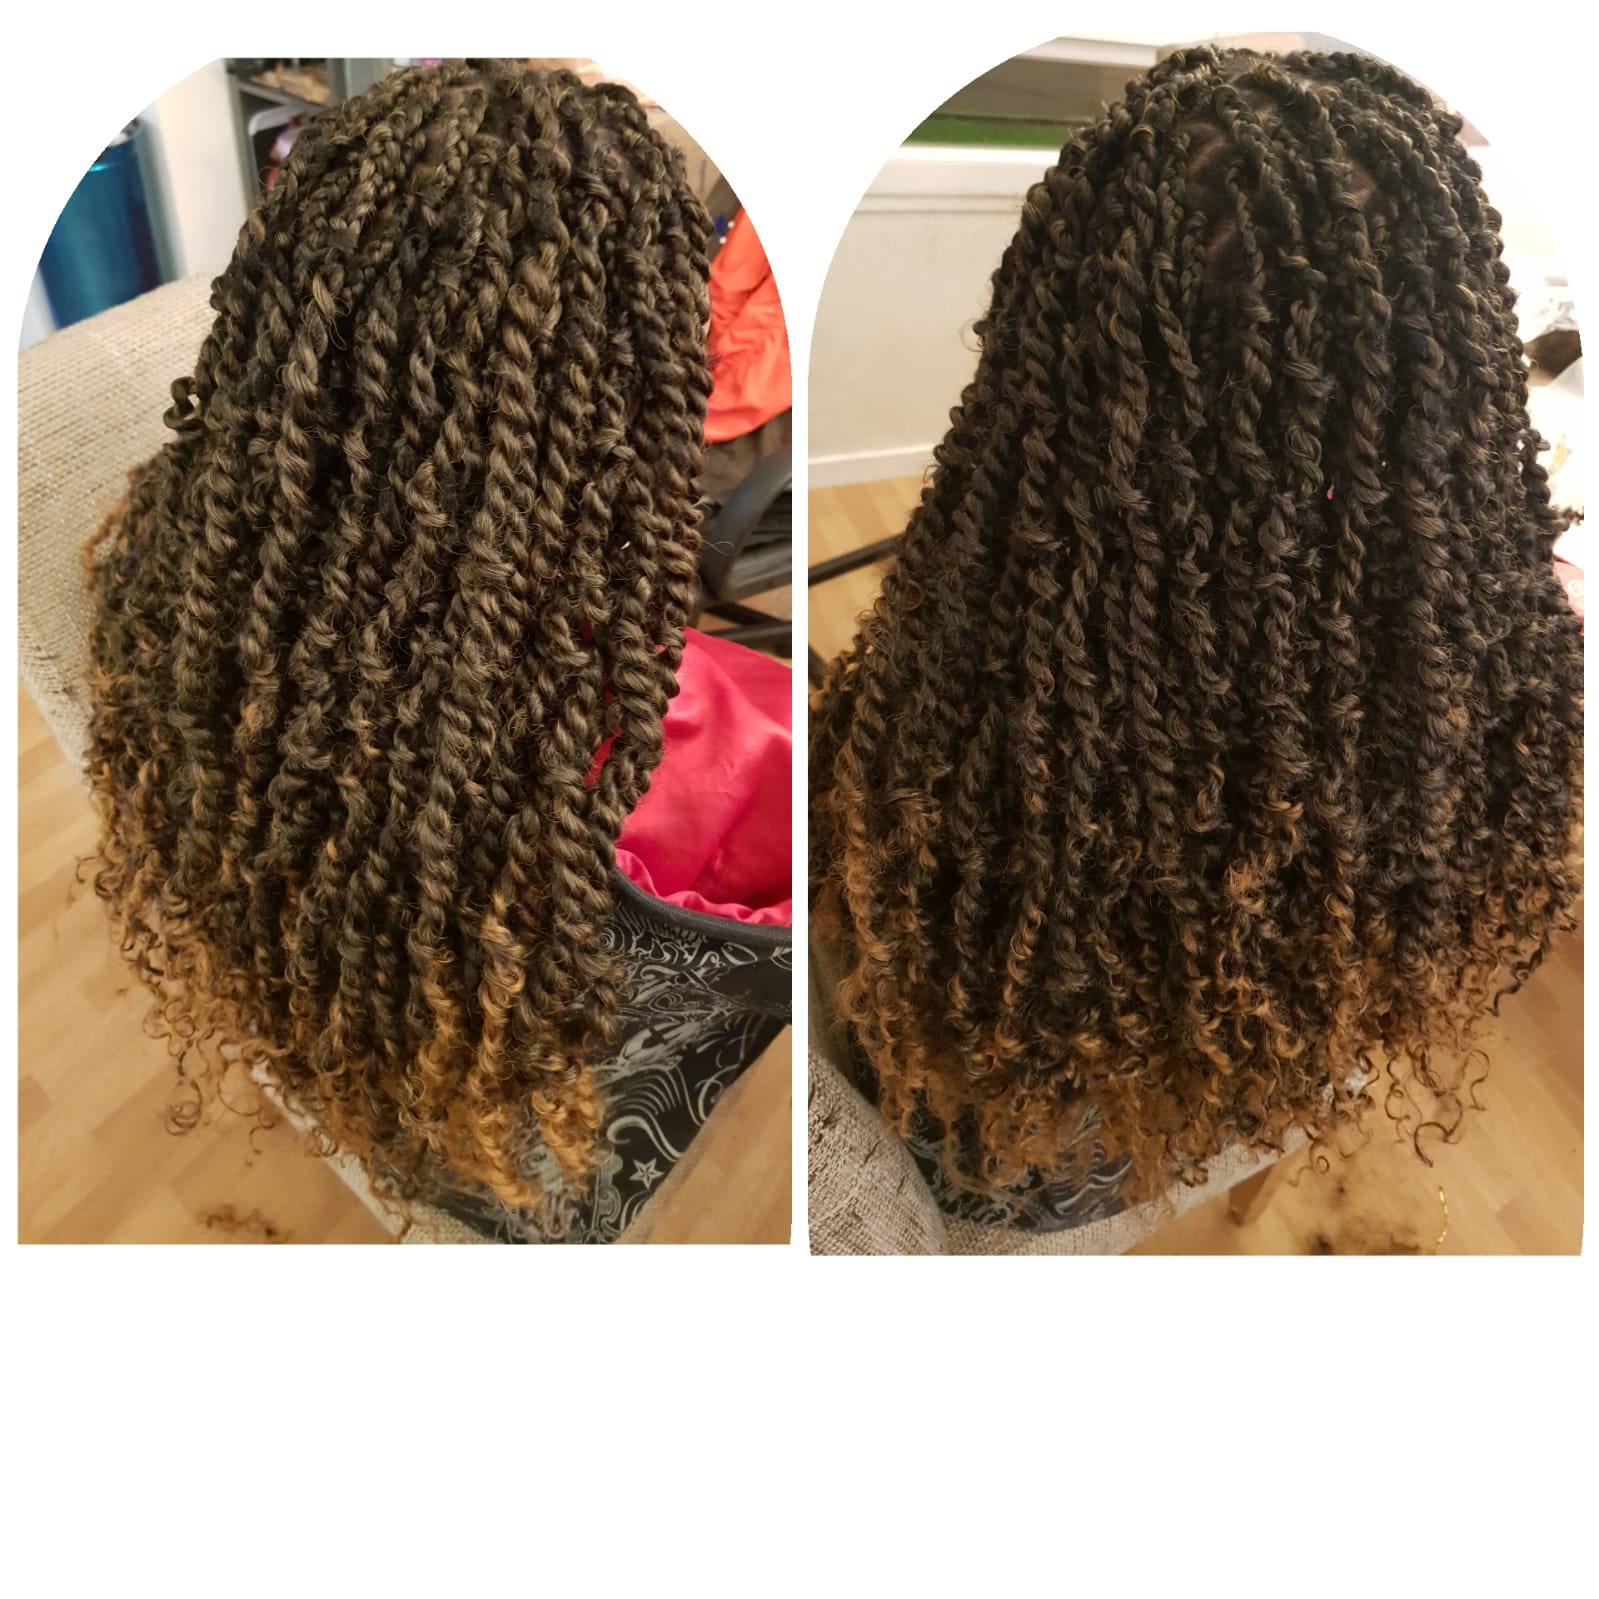 salon de coiffure afro tresse tresses box braids crochet braids vanilles tissages paris 75 77 78 91 92 93 94 95 IJVKFGQY